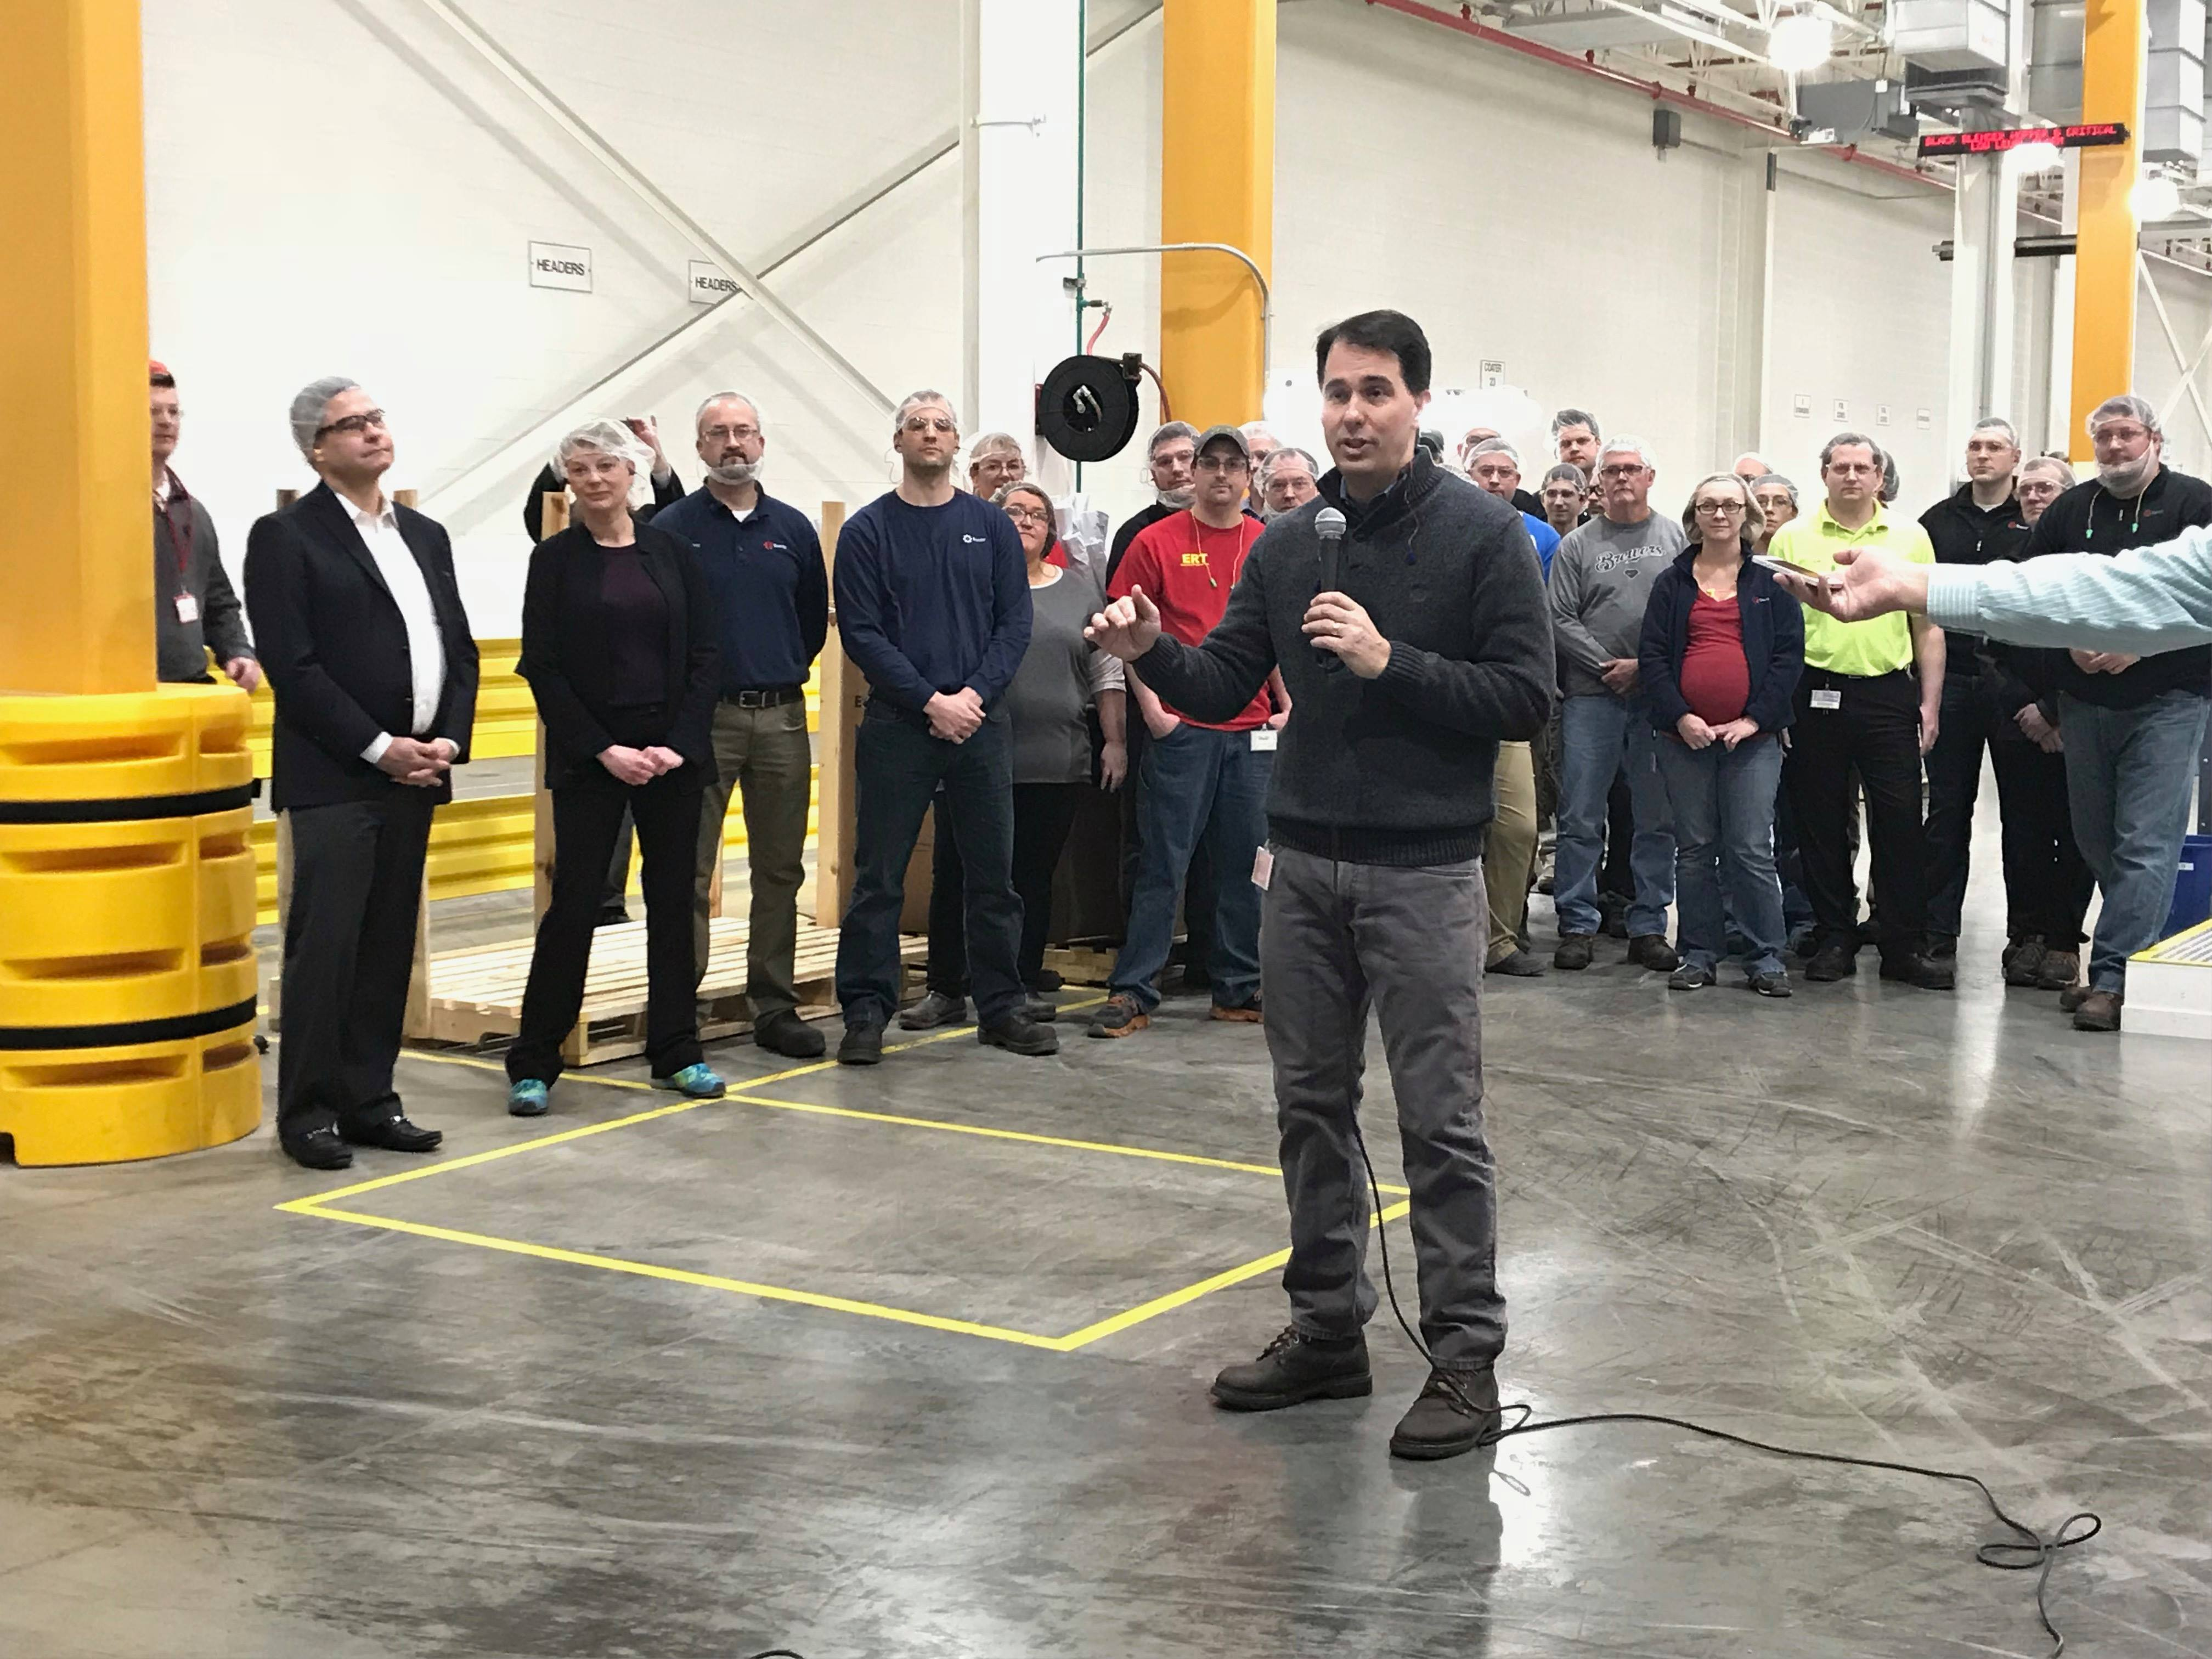 Gov. Scott Walker visits Bemis in Oshkosh to talk about tariffs, March 6, 2018. (WLUK/Pafoua Yang)